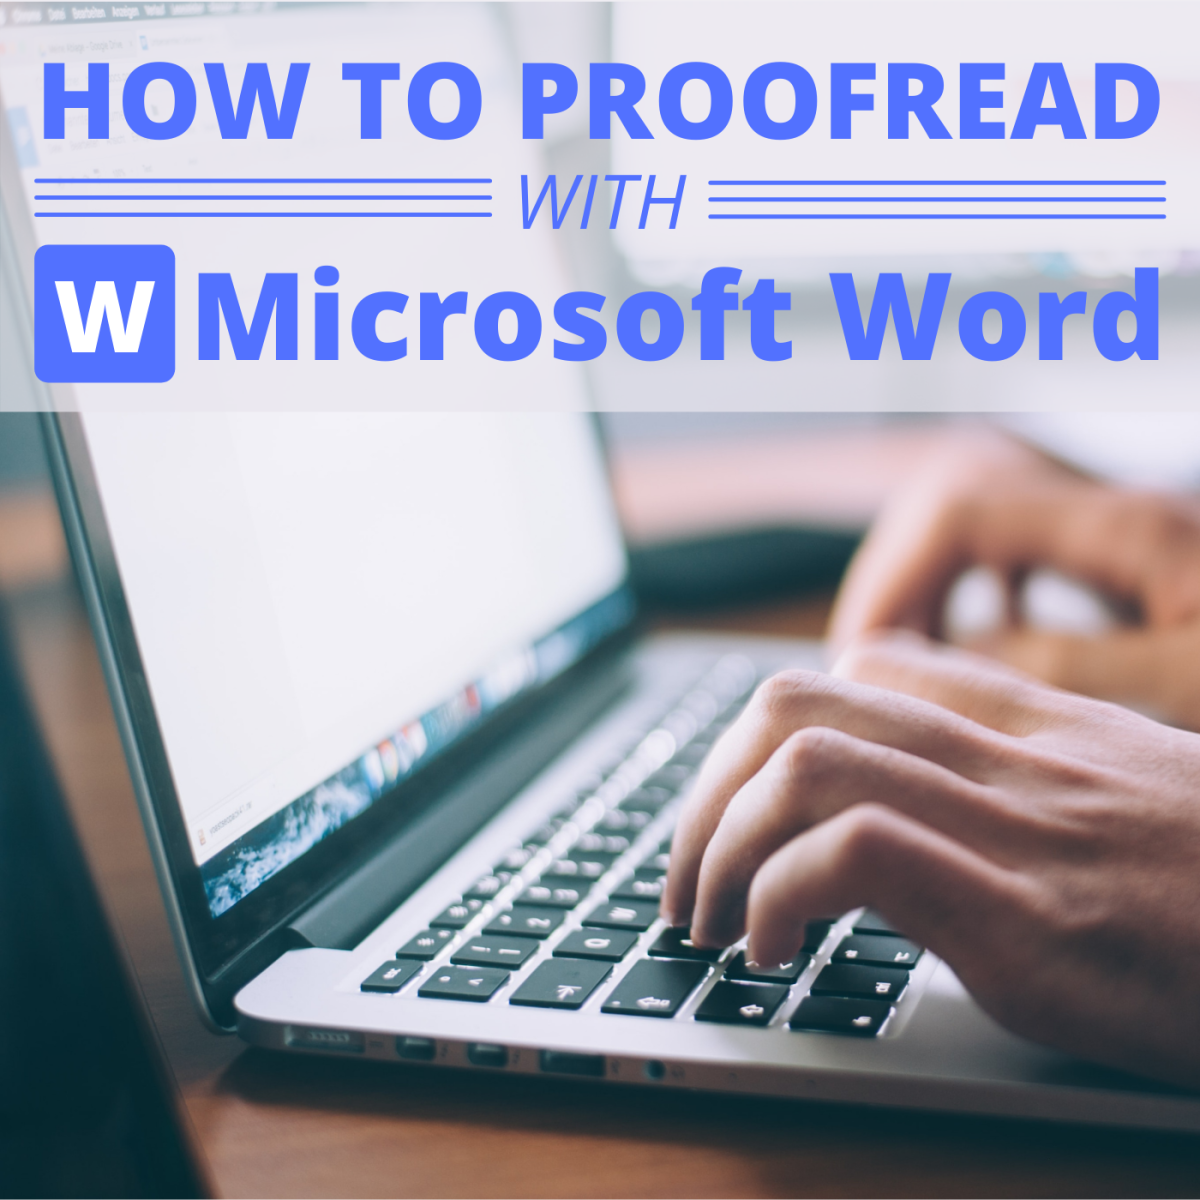 How to Proofread a Document on Microsoft Word